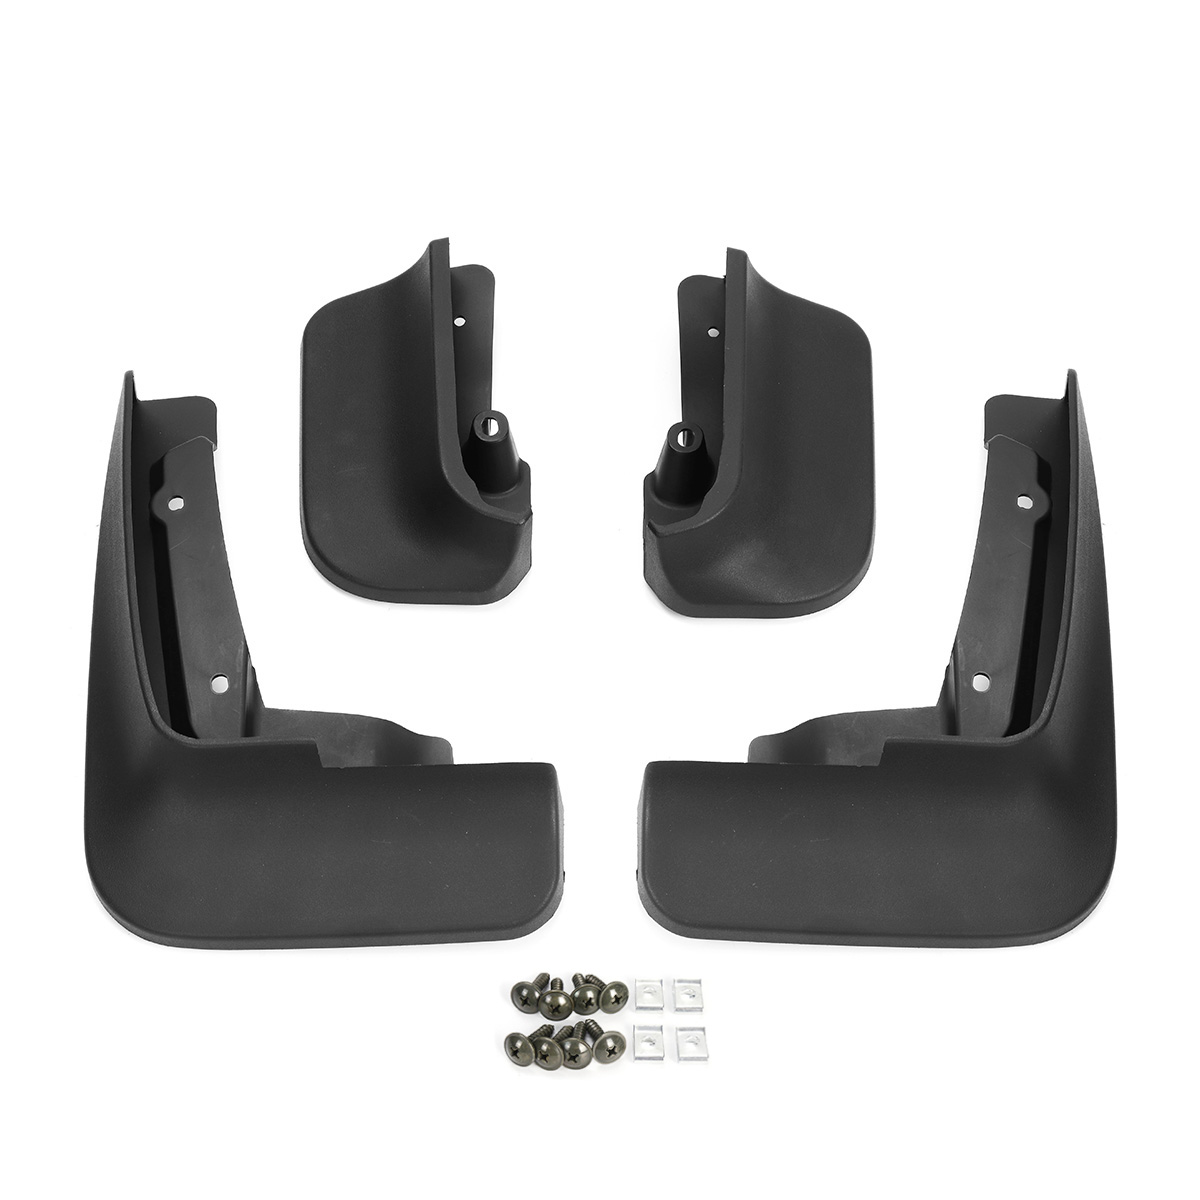 Image 2 - Car Mud Flaps Splash Guards for Fender Mudflaps Mudguards For VW Transporter T6 Caravelle 2016 2017 2018 Mulivan 2017 2018-in Mudguards from Automobiles & Motorcycles